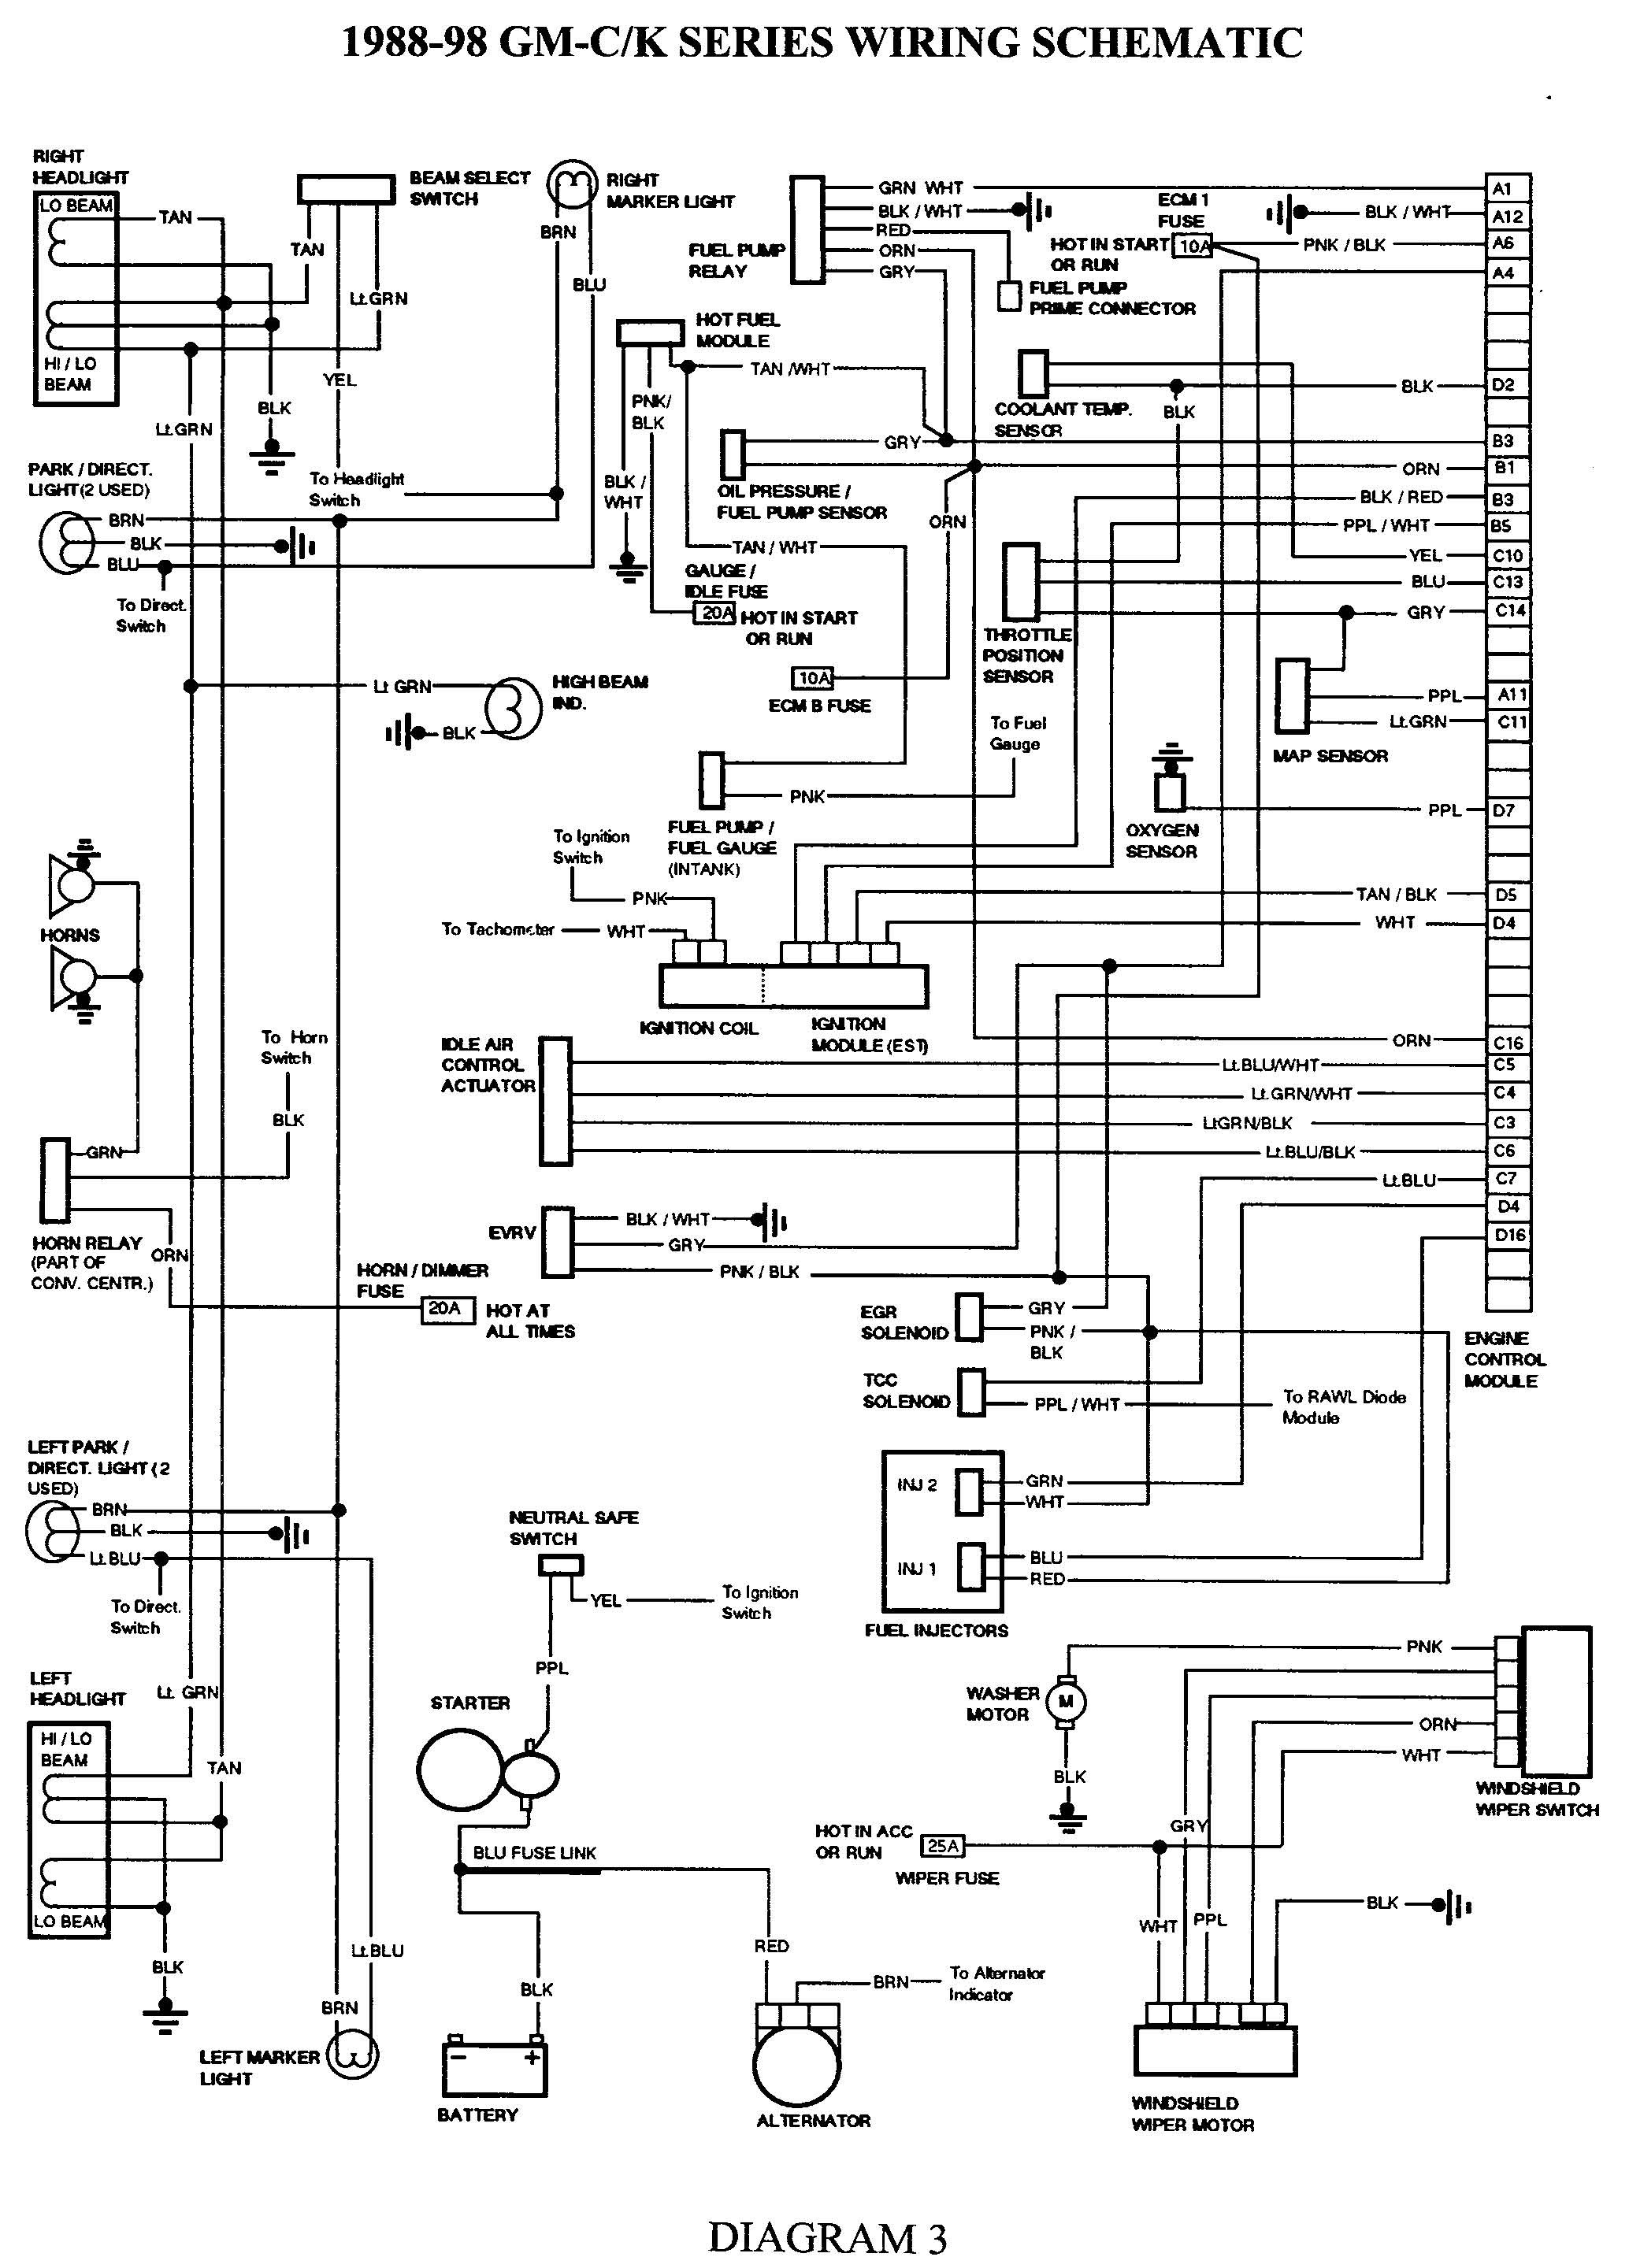 2008 gmc engine diagram | wiring diagram wiring diagram for 1979 gmc sierra wiring diagram for 2010 gmc sierra